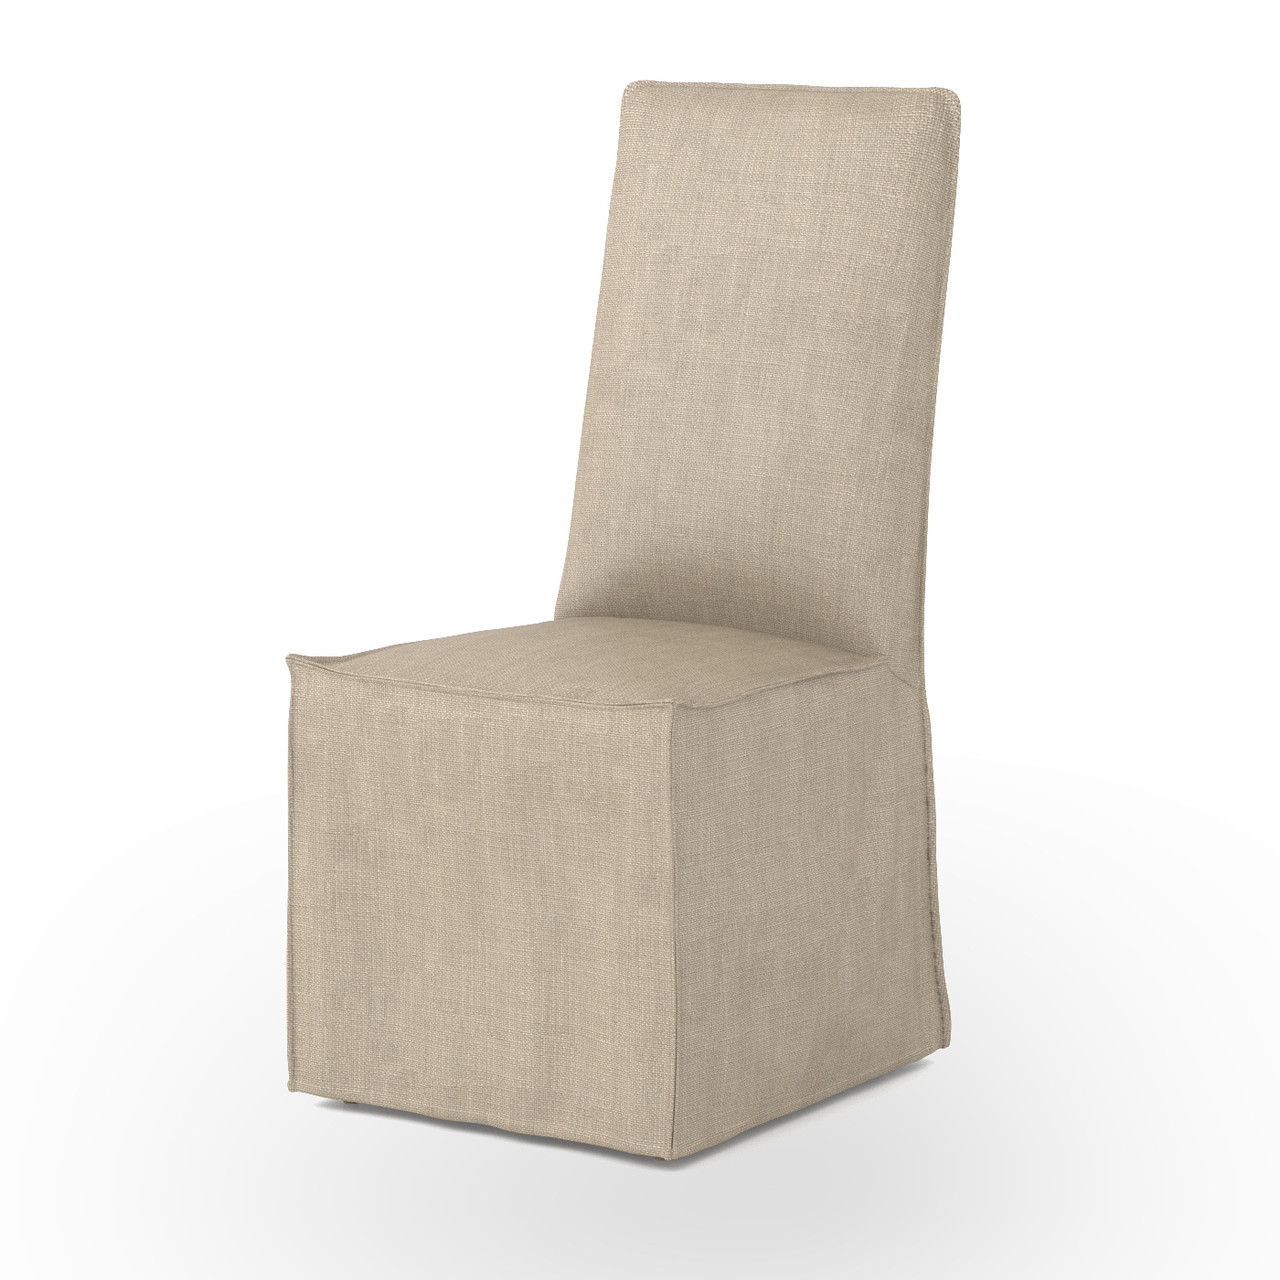 Brilliant Downey Upholstered Skirted Dining Chair Ibusinesslaw Wood Chair Design Ideas Ibusinesslaworg